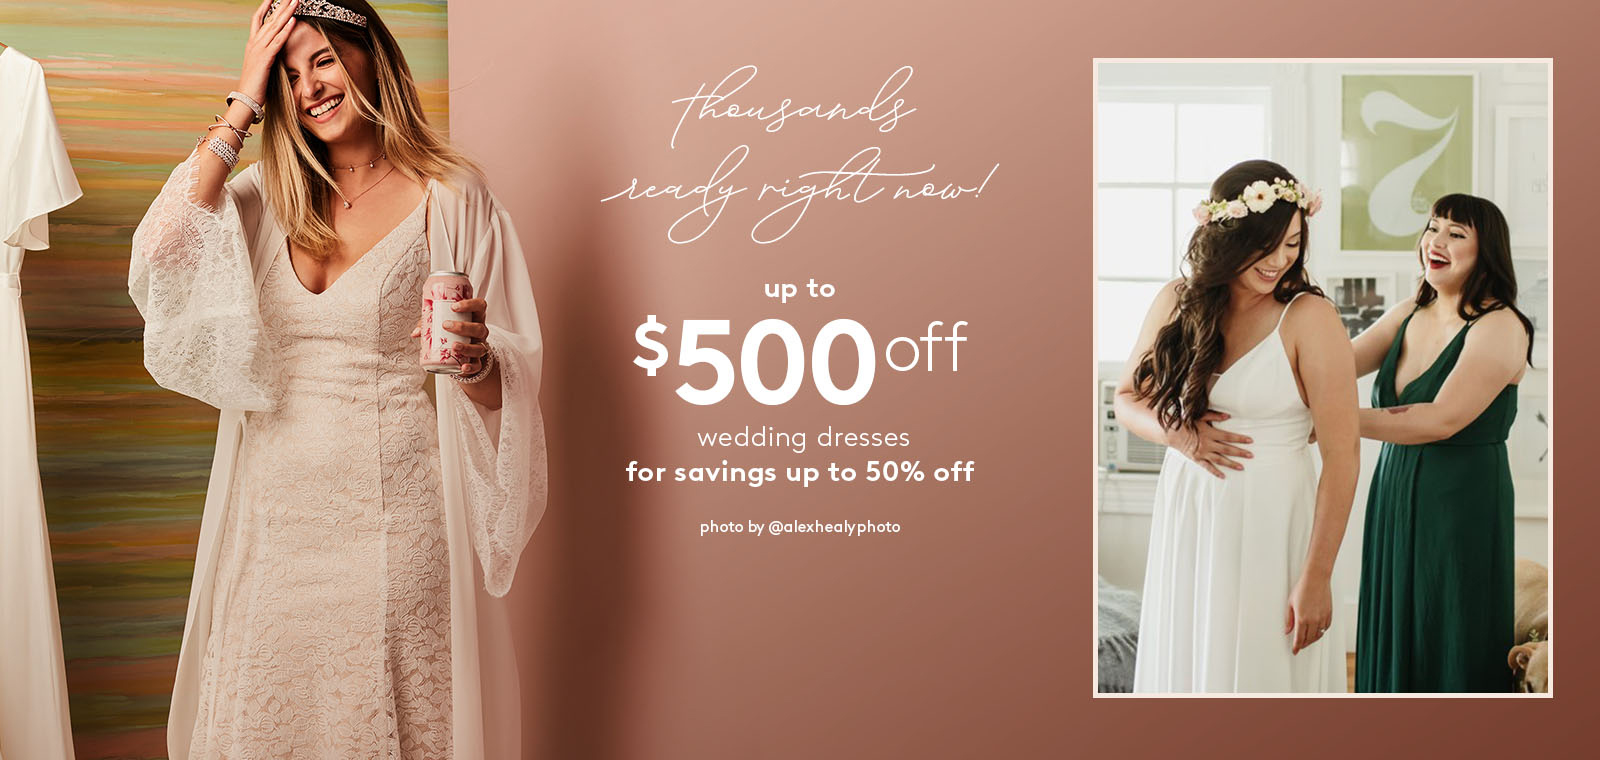 thousands ready right now! up to $500 off wedding dresses